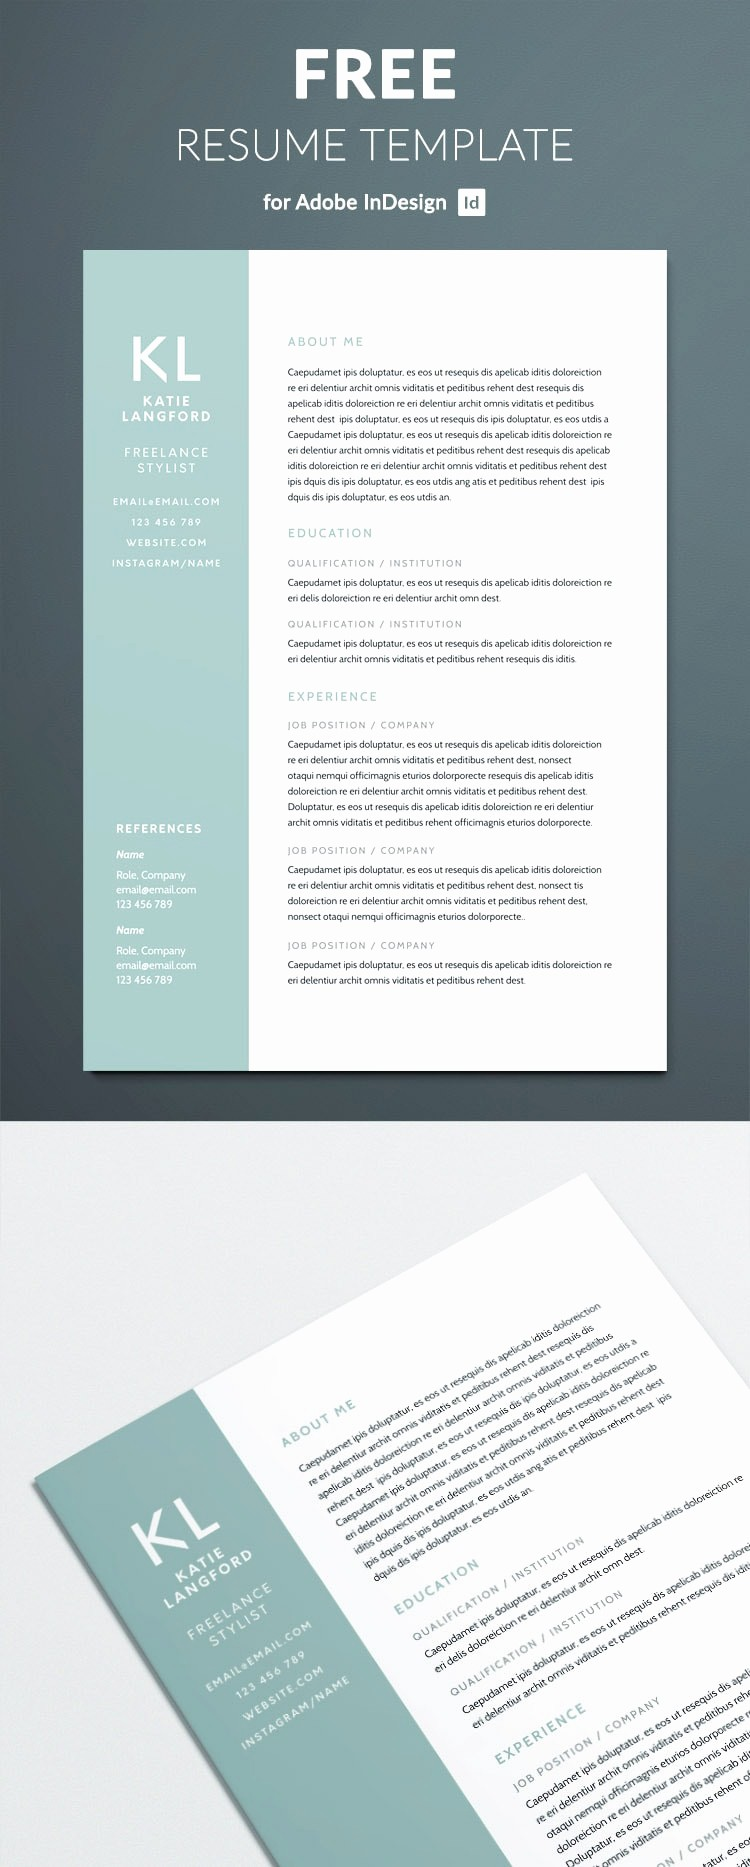 Sample Resume Templates Free Download Fresh Modern Resume Template for Indesign